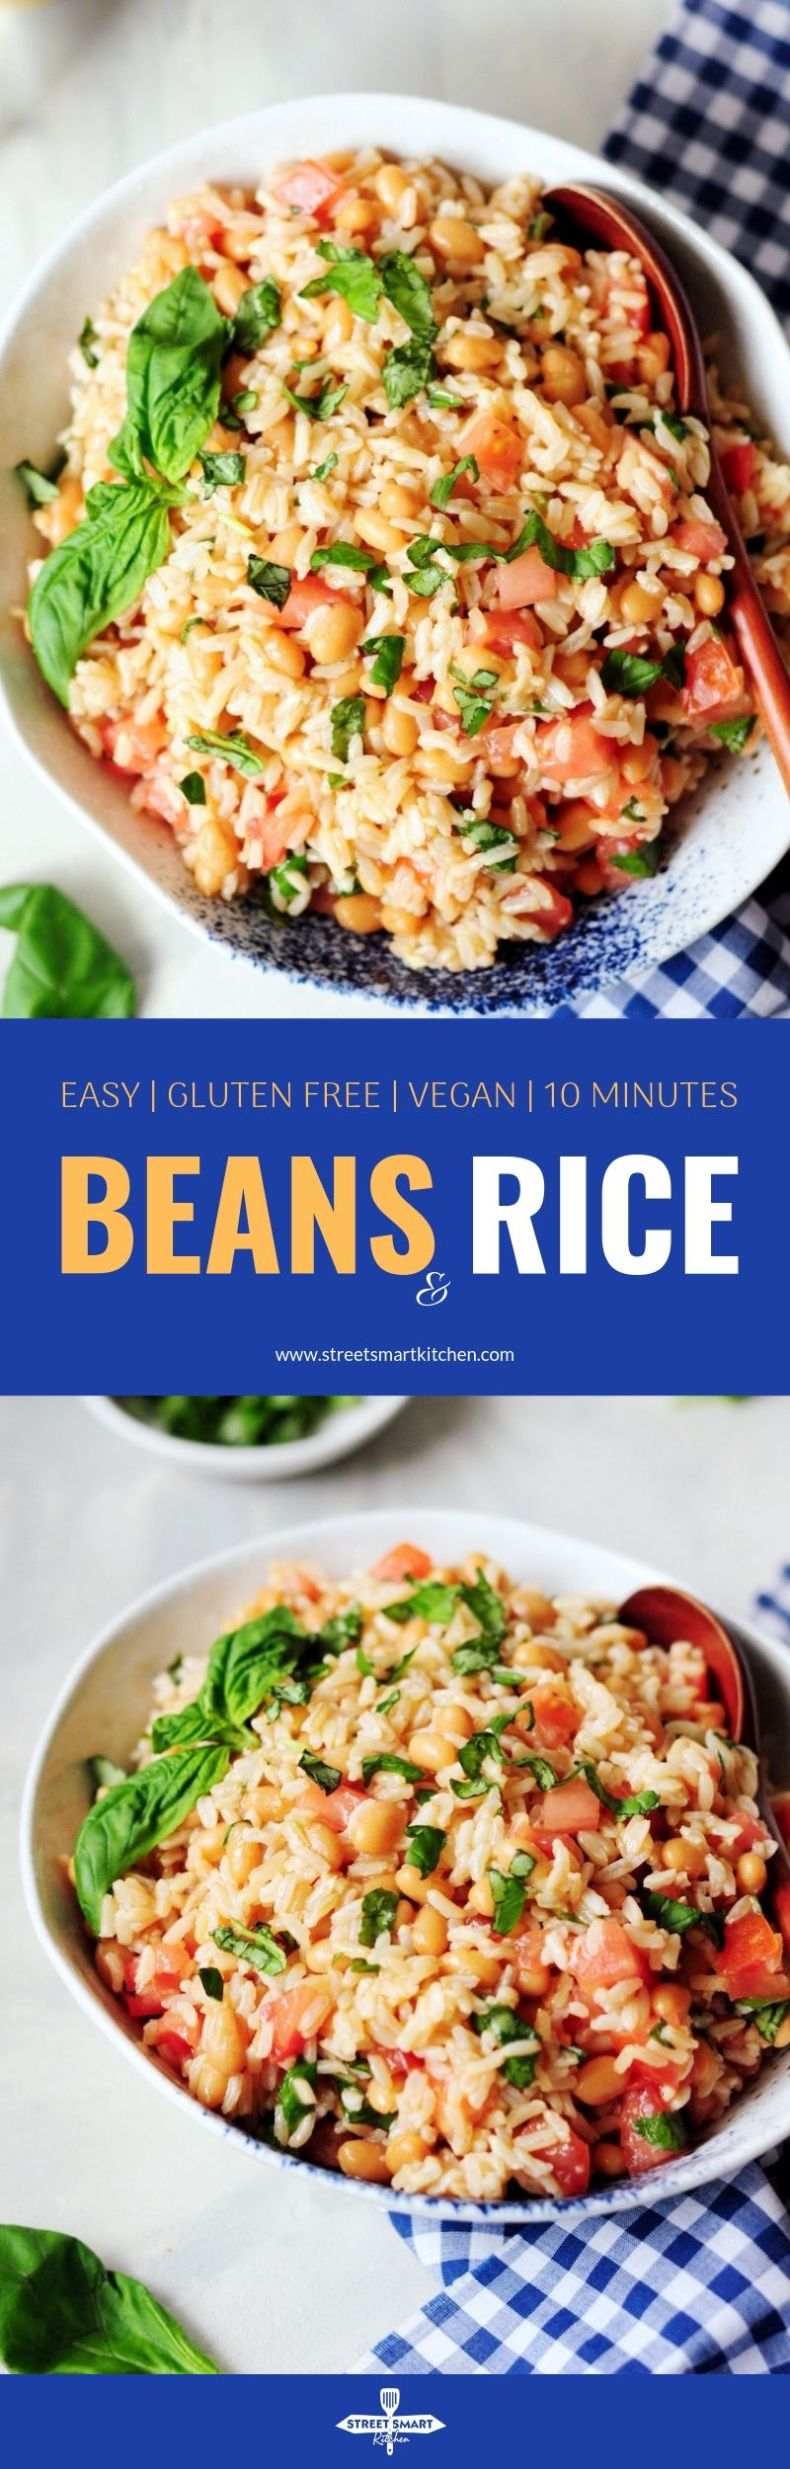 Use your leftover rice to make this light and refreshing beans and rice side dish. It's protein-packed, gluten-free, and ready in ten minutes.